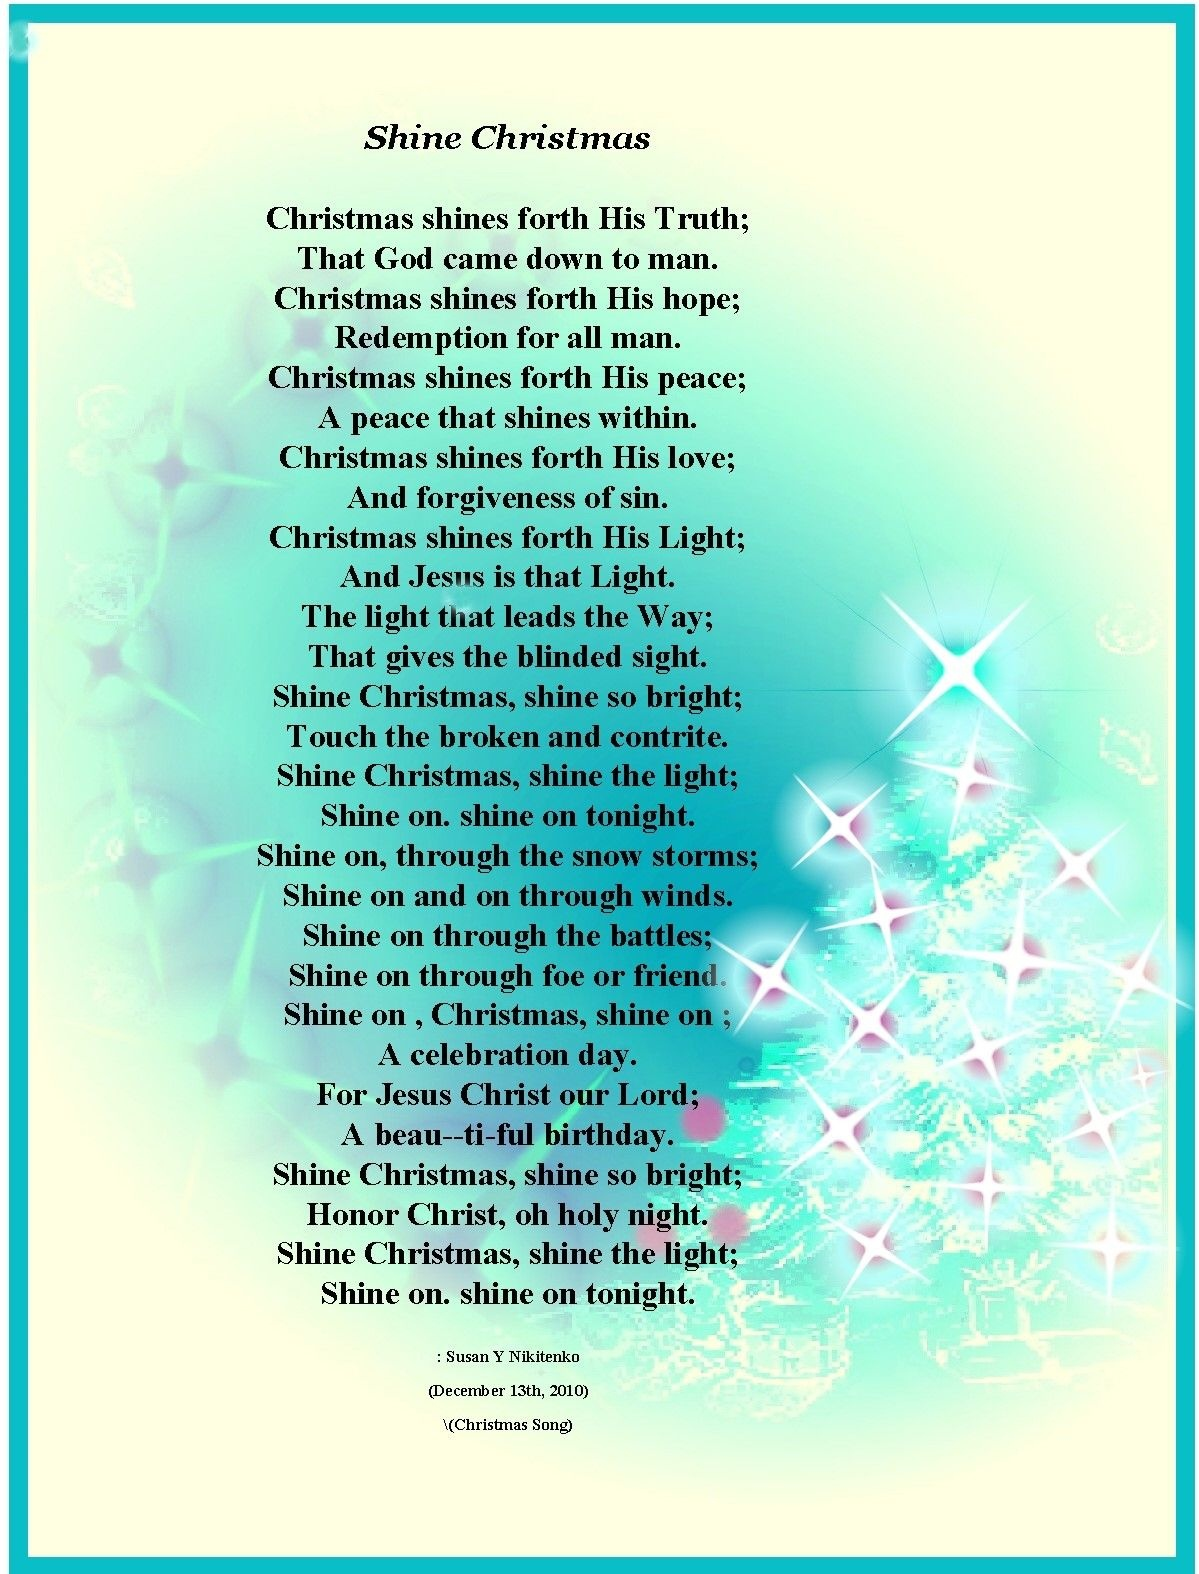 Christian Christmas Poems About Angels | Christian Images In My - Free Printable Christian Christmas Poems